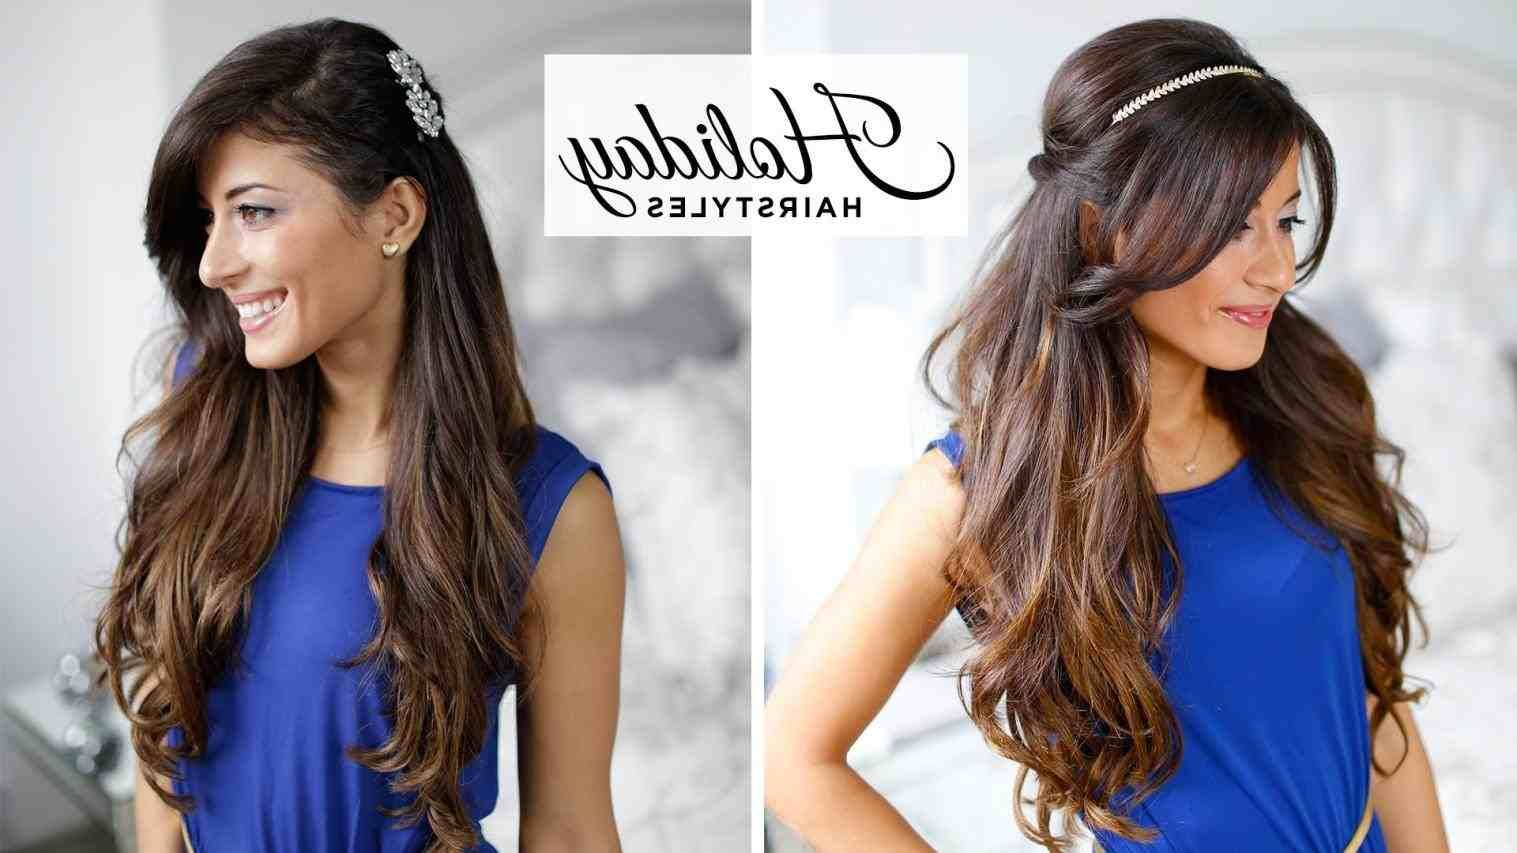 Balayagehair Club Nbspthis Website Is For Sale Nbspbalayagehair Resources And Information Easy Party Hairstyles Easy Hairstyles Party Hairstyles For Long Hair